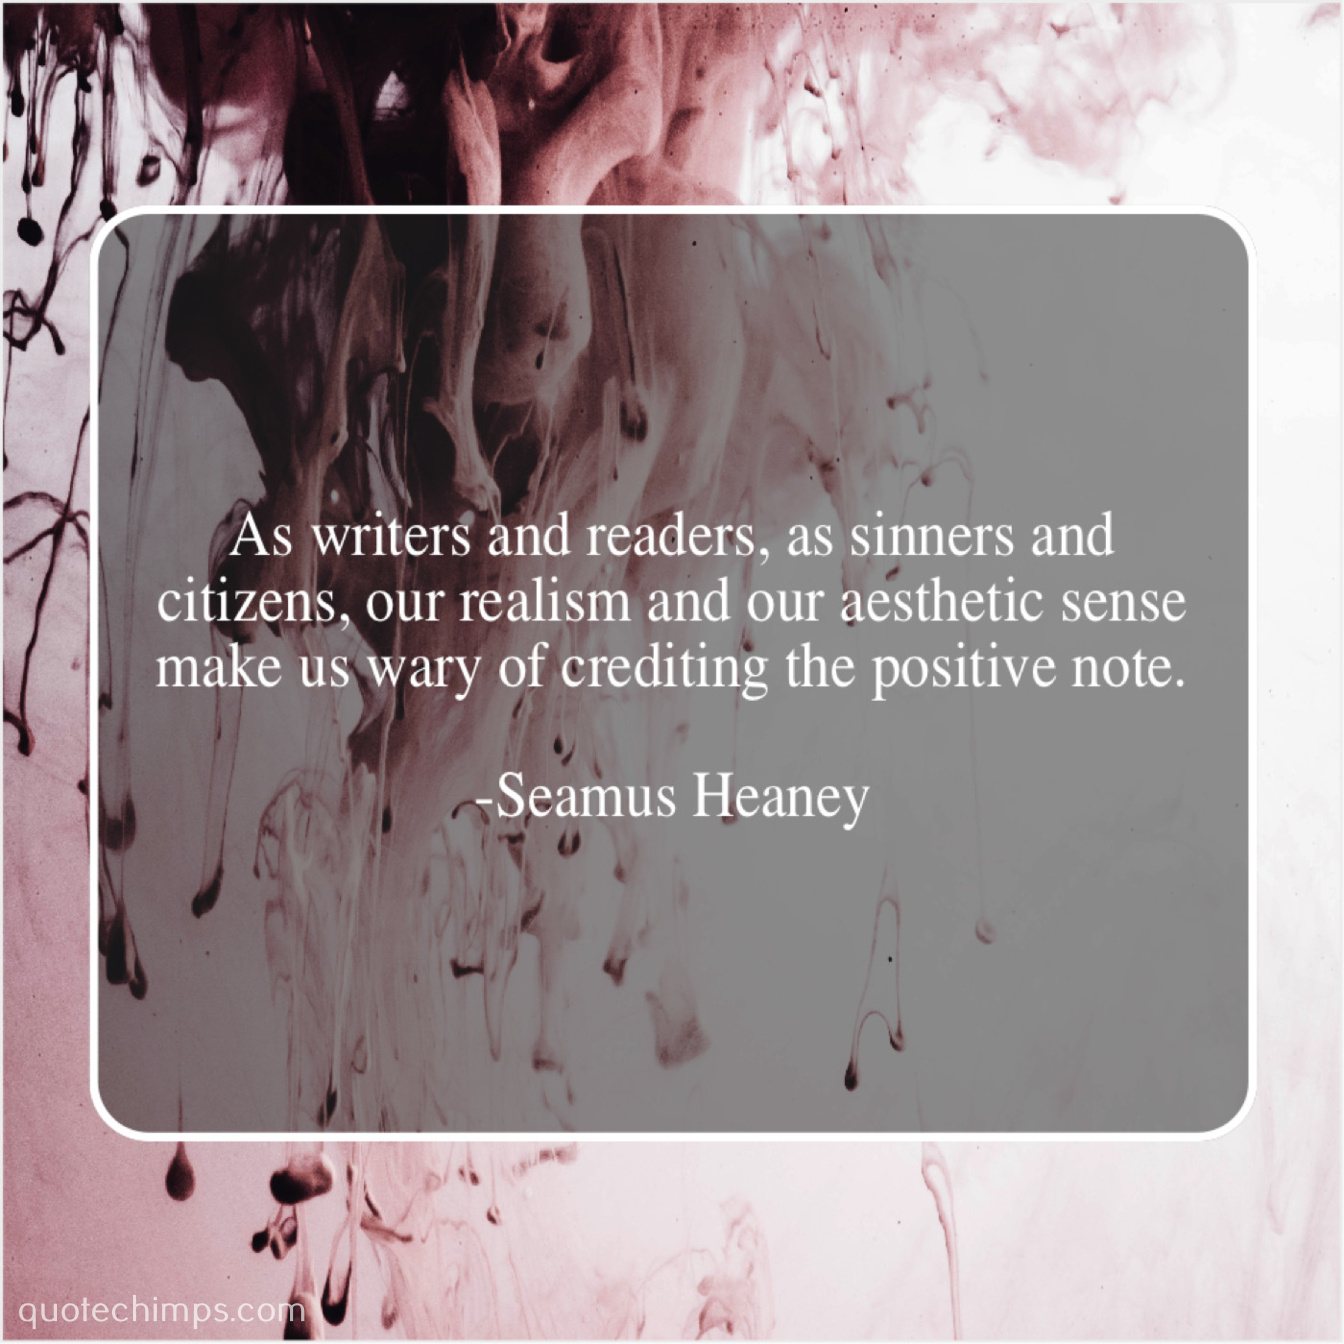 seamus heaney as writers and readers as quote chimps